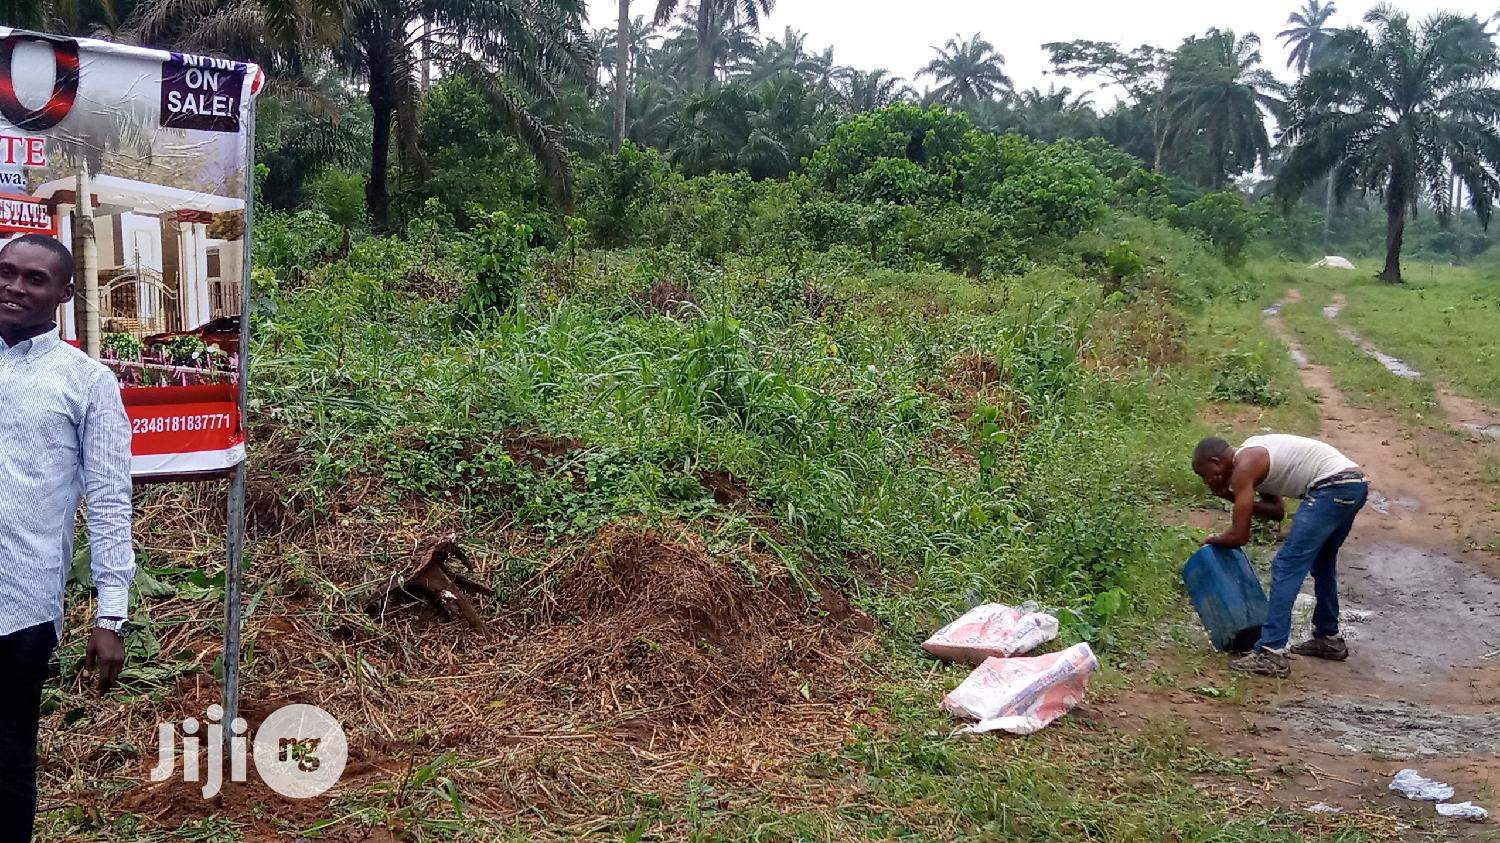 100% Genuine Affordable Land for Sale at Omagwa 450k/Plot   Land & Plots For Sale for sale in Port-Harcourt, Rivers State, Nigeria